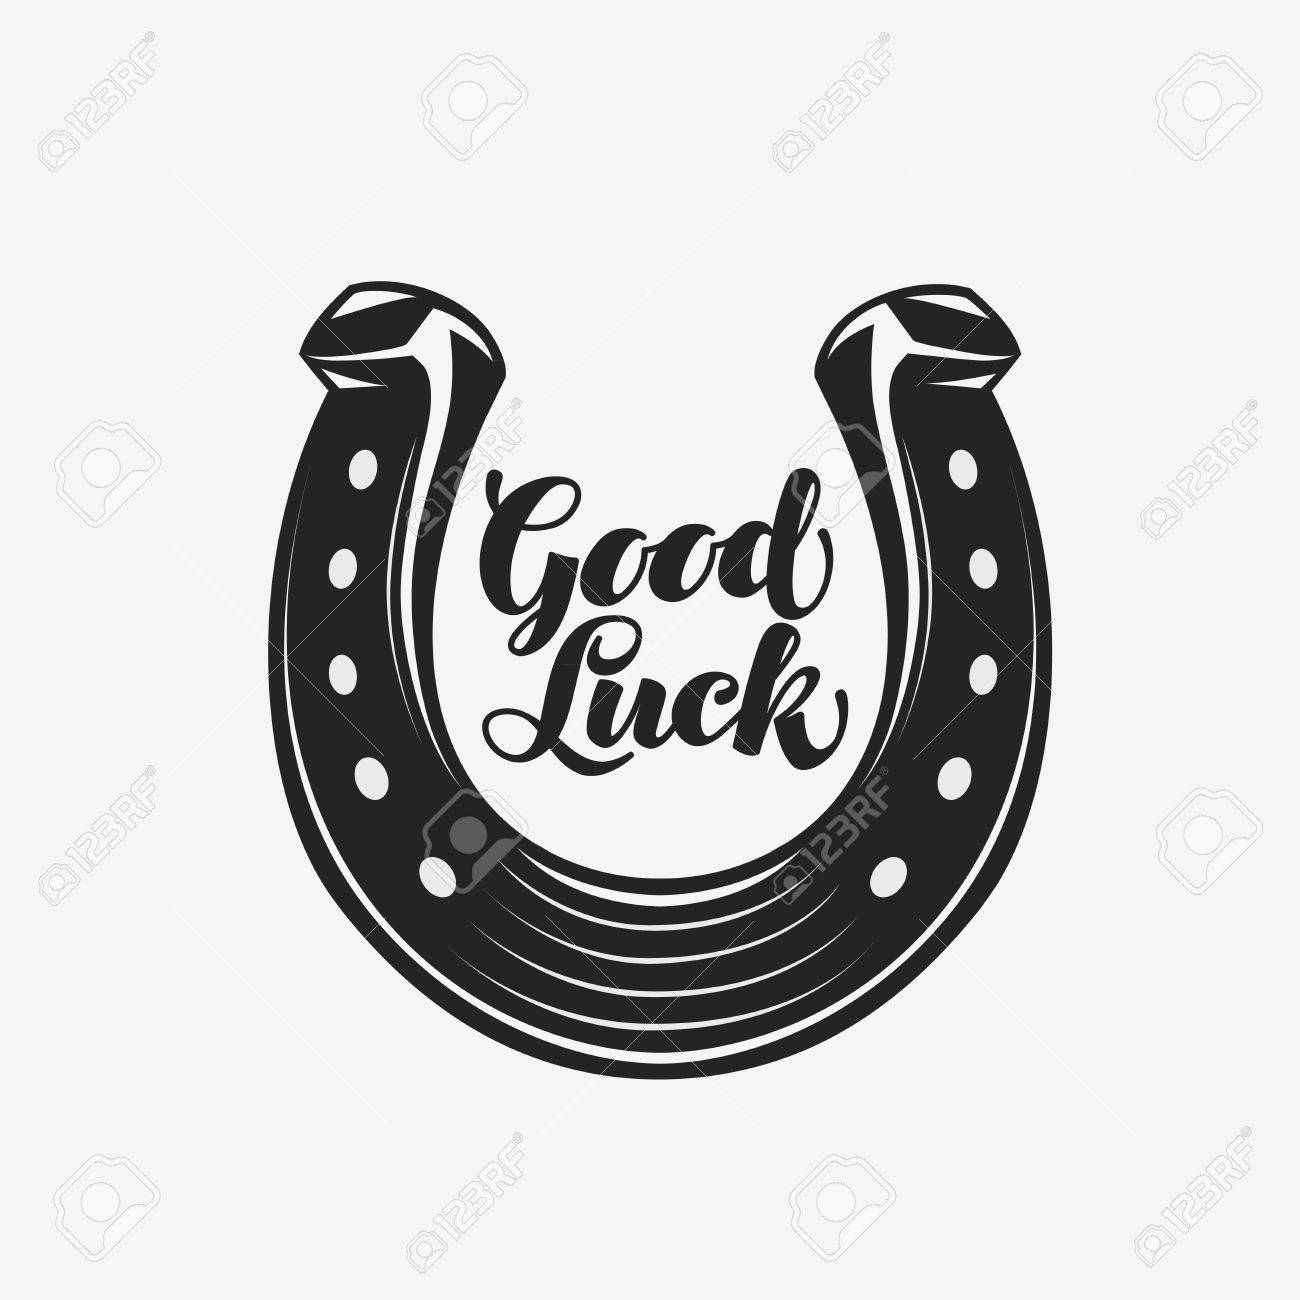 Good luck. Horseshoe with inscription. Vector symbol icon - 67209206